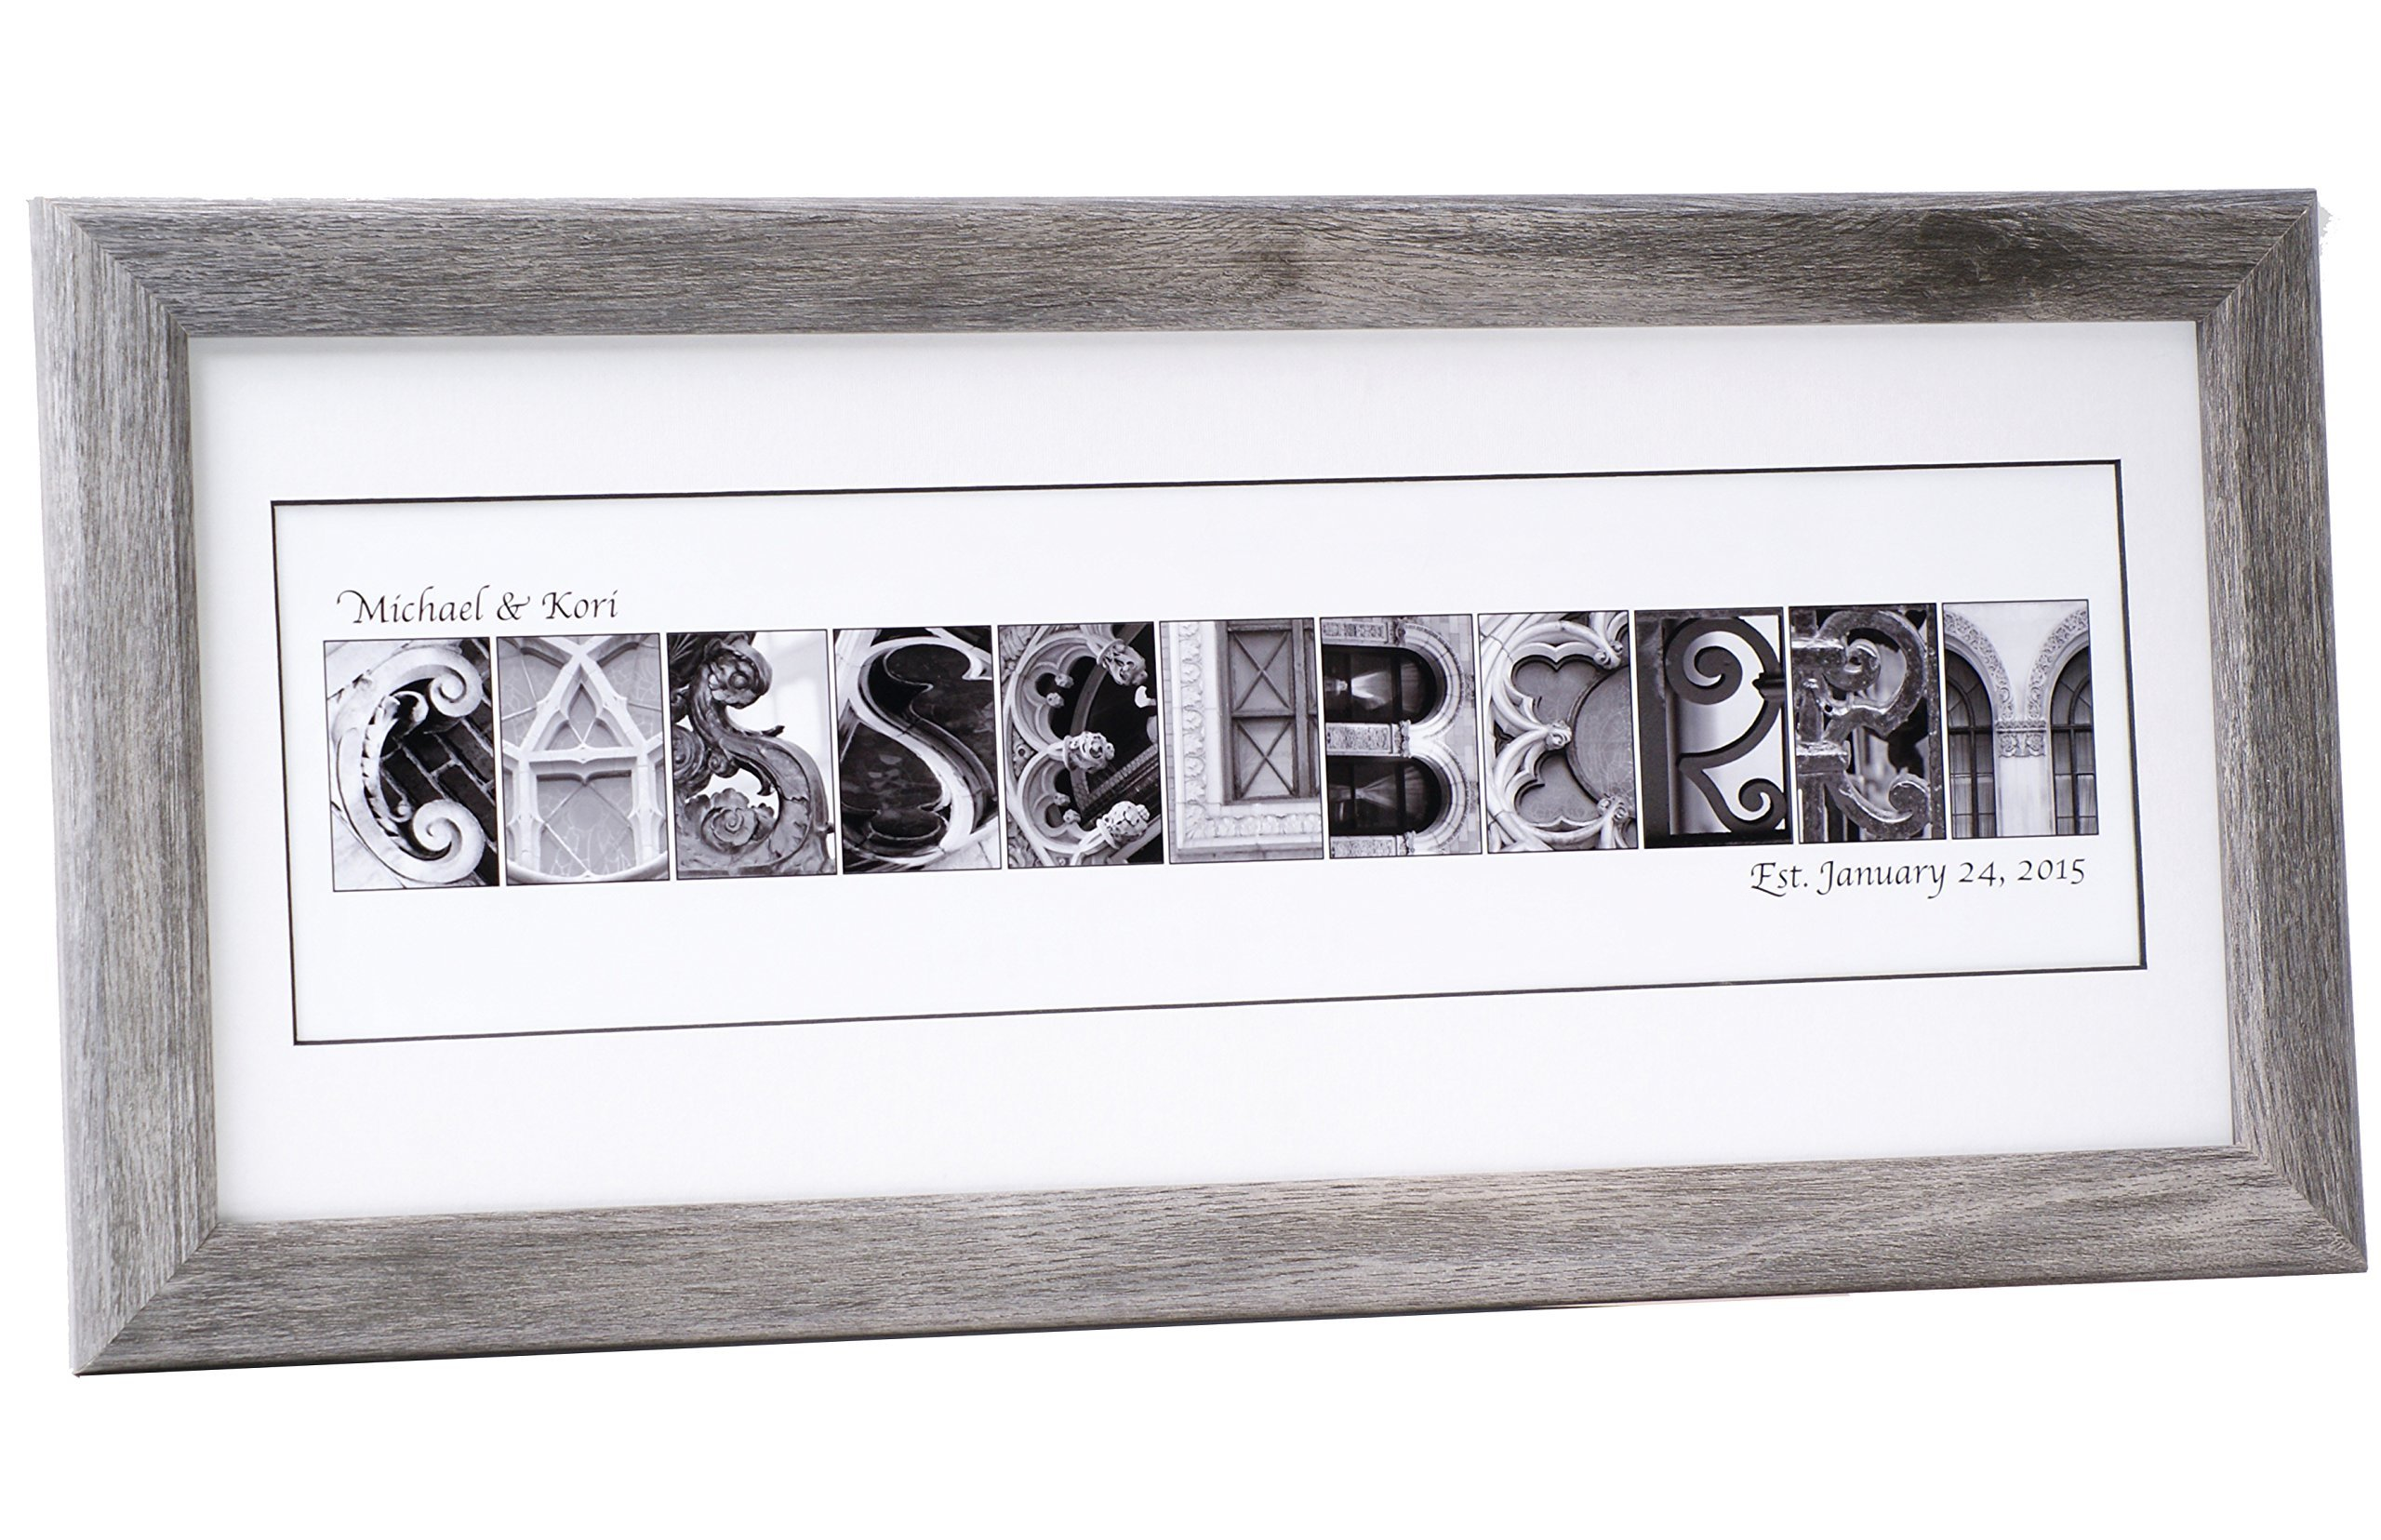 Personalized Name Sign Plaque with 12 by 26 inch Driftwood Frame created with Black and White Architectural Alphabet Photographs for Personalized Gift, Wedding, Graduation, Anniversary, Childrens Name